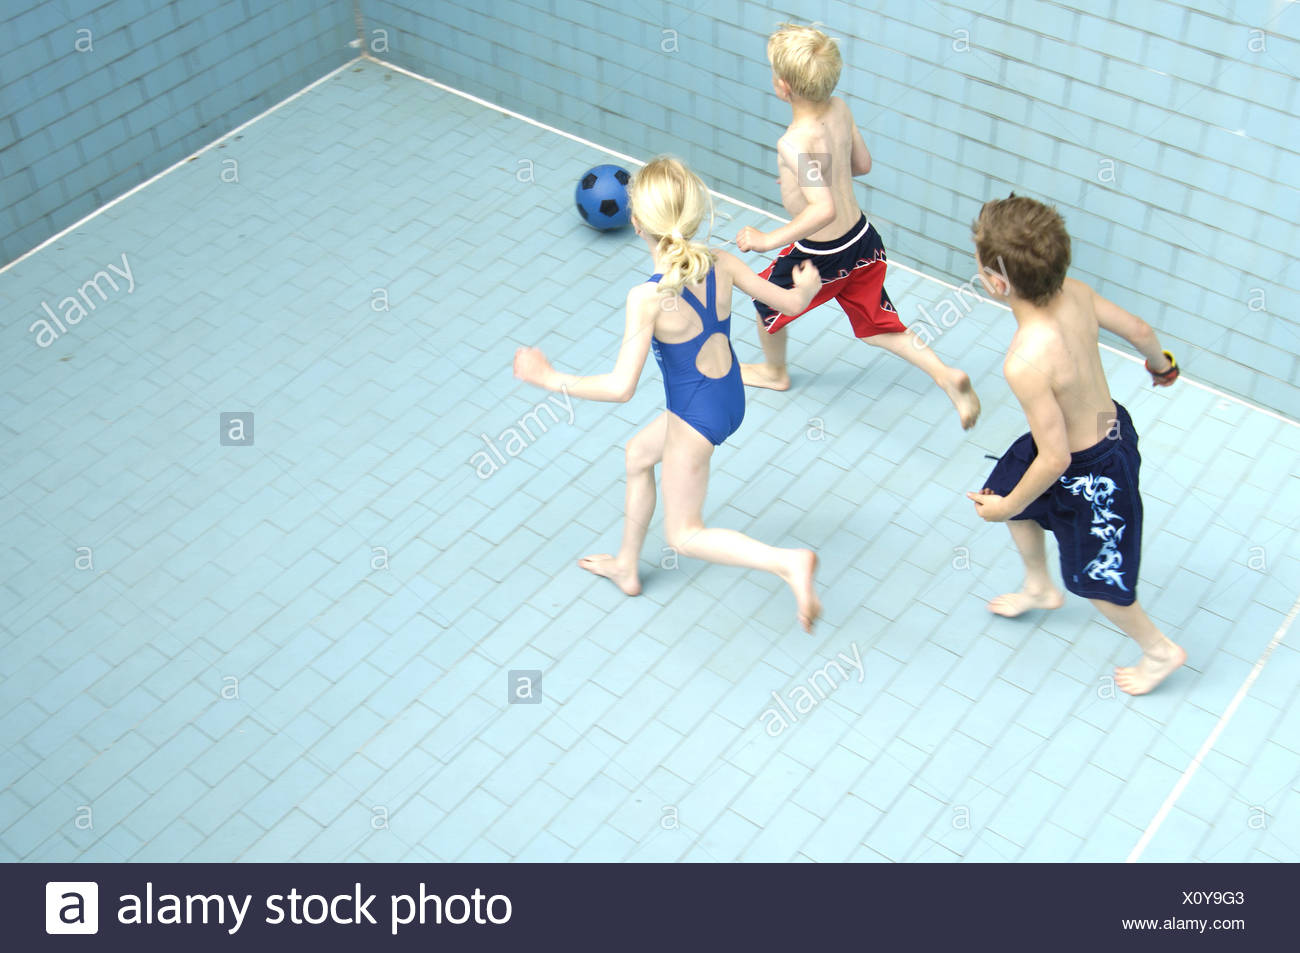 Pool empty children soccer games from above series people girls boys bath-clothing pools basin-ground tiles ball ball-game - Stock Image